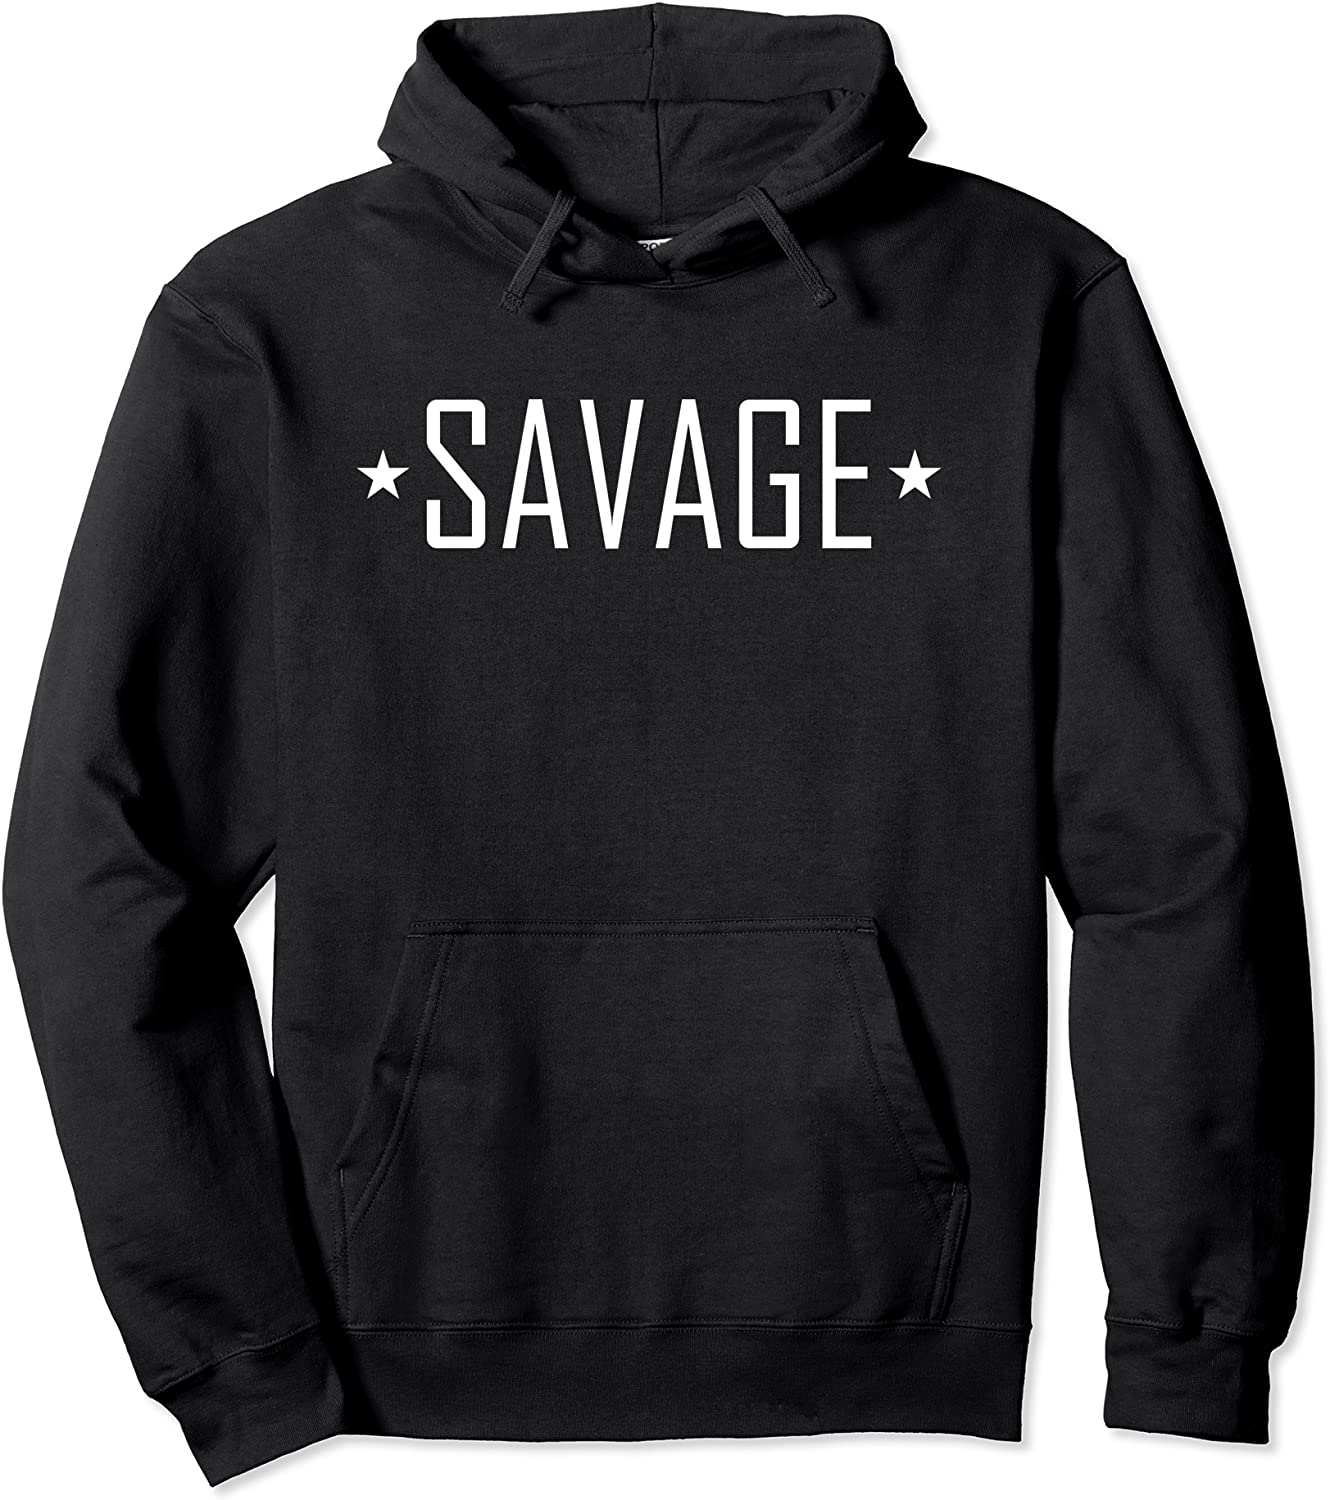 Savage Pullover Hoodie Max 79% OFF excellence